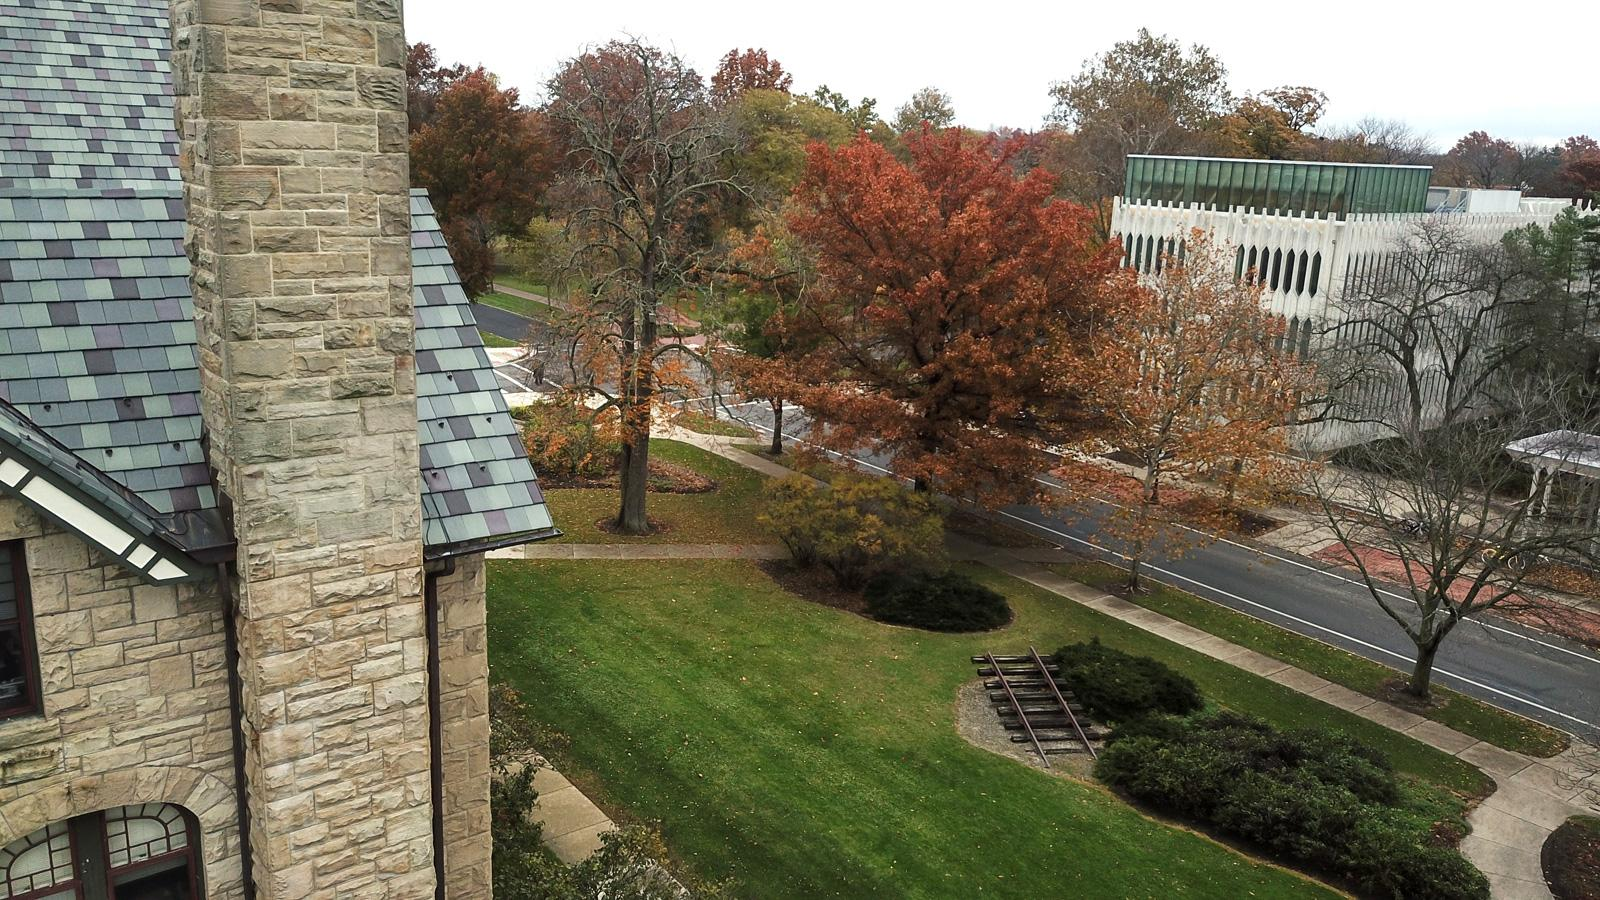 Aerial view of campus buildings and fall foliage.